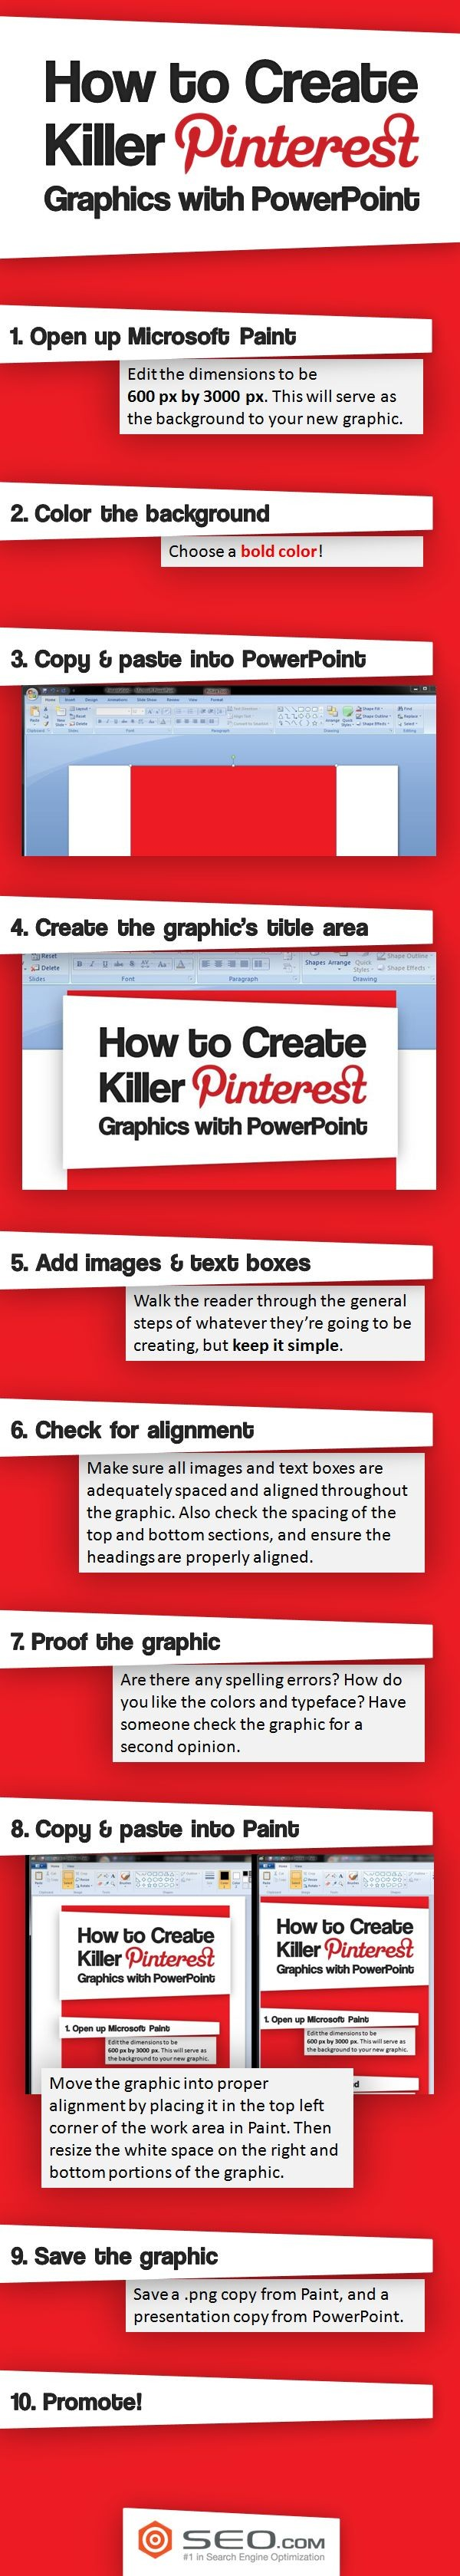 How to Create Killer Pinterest Graphics with PowerPoint via Mary Powers Powers Powers Powers